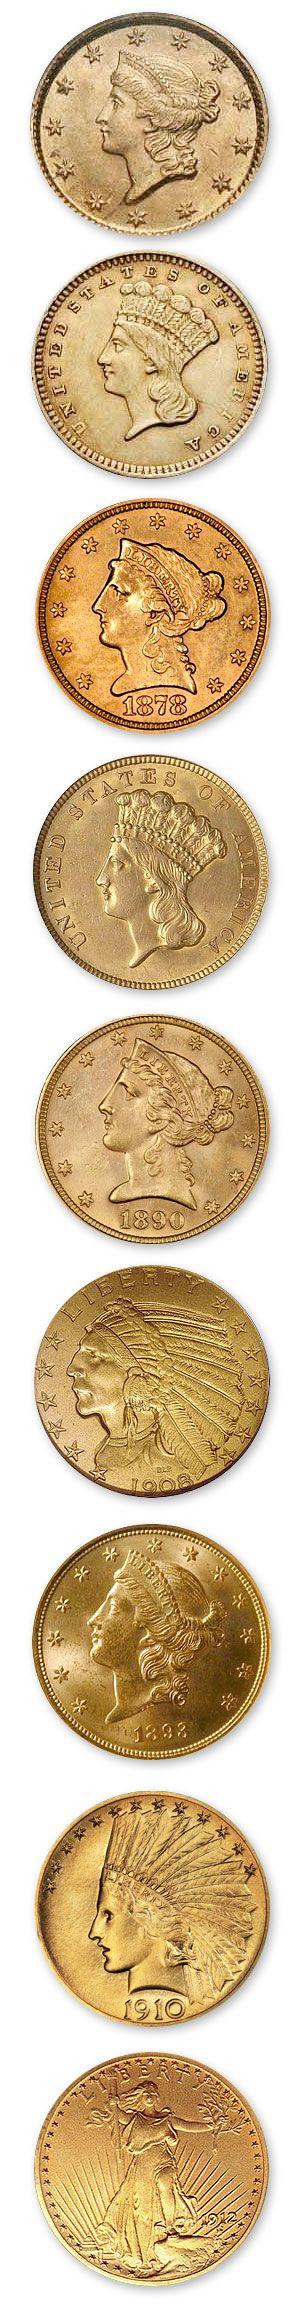 US gold coins from the dollar Liberty Head to the 20 dollar St Gaudens double eagle. Finding ANY gold coin is on my bucket list!  Always looking forward to that day, every time I go out detecting.